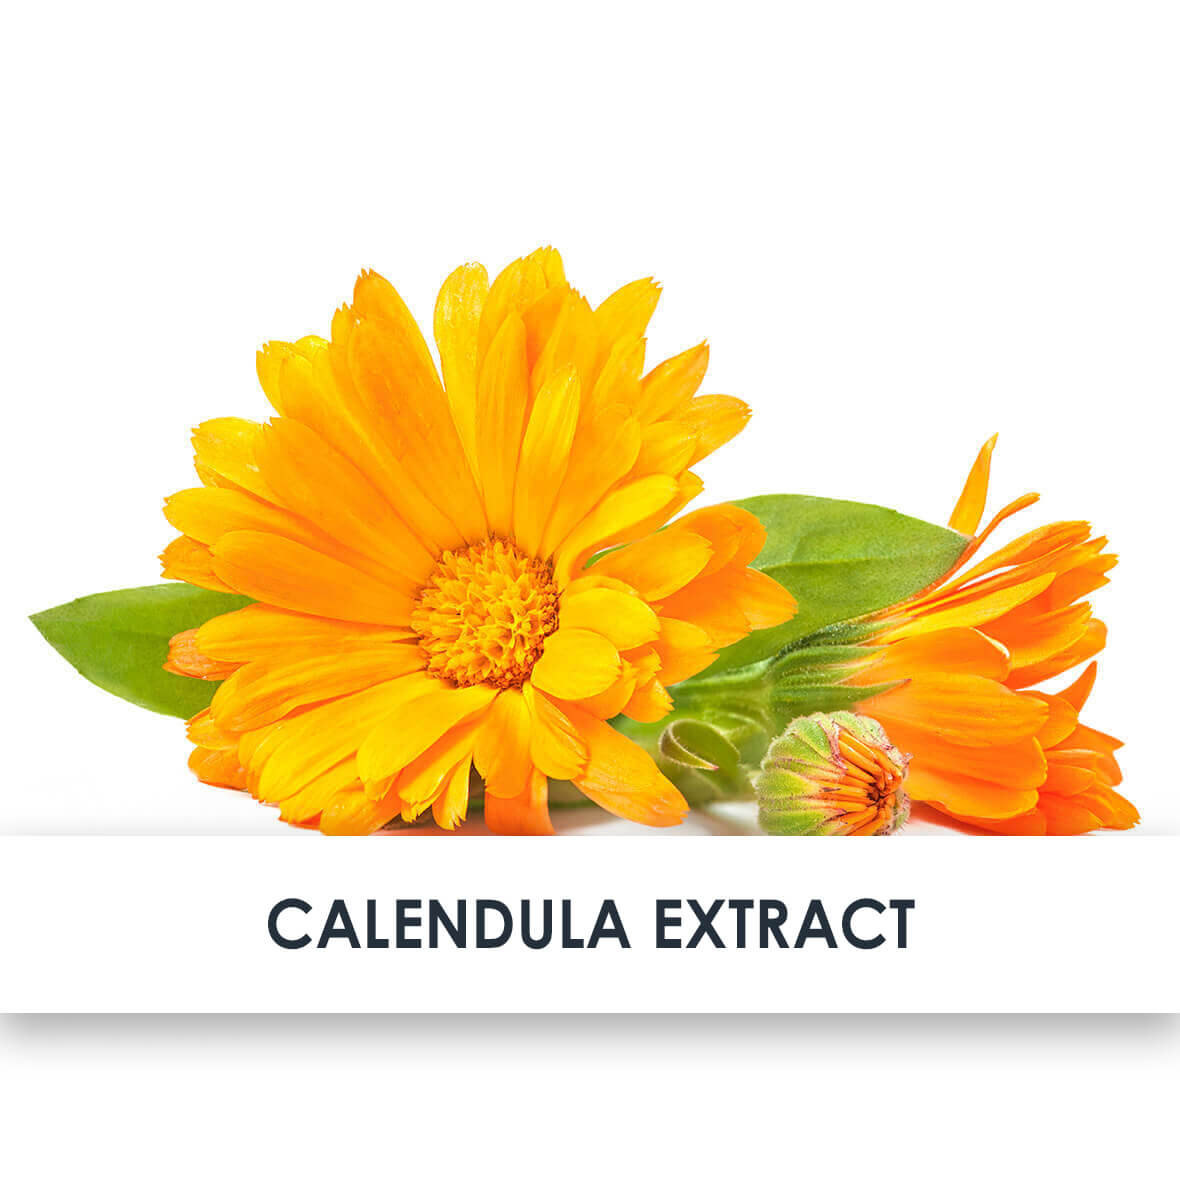 Calendula Extract Skincare Benefits